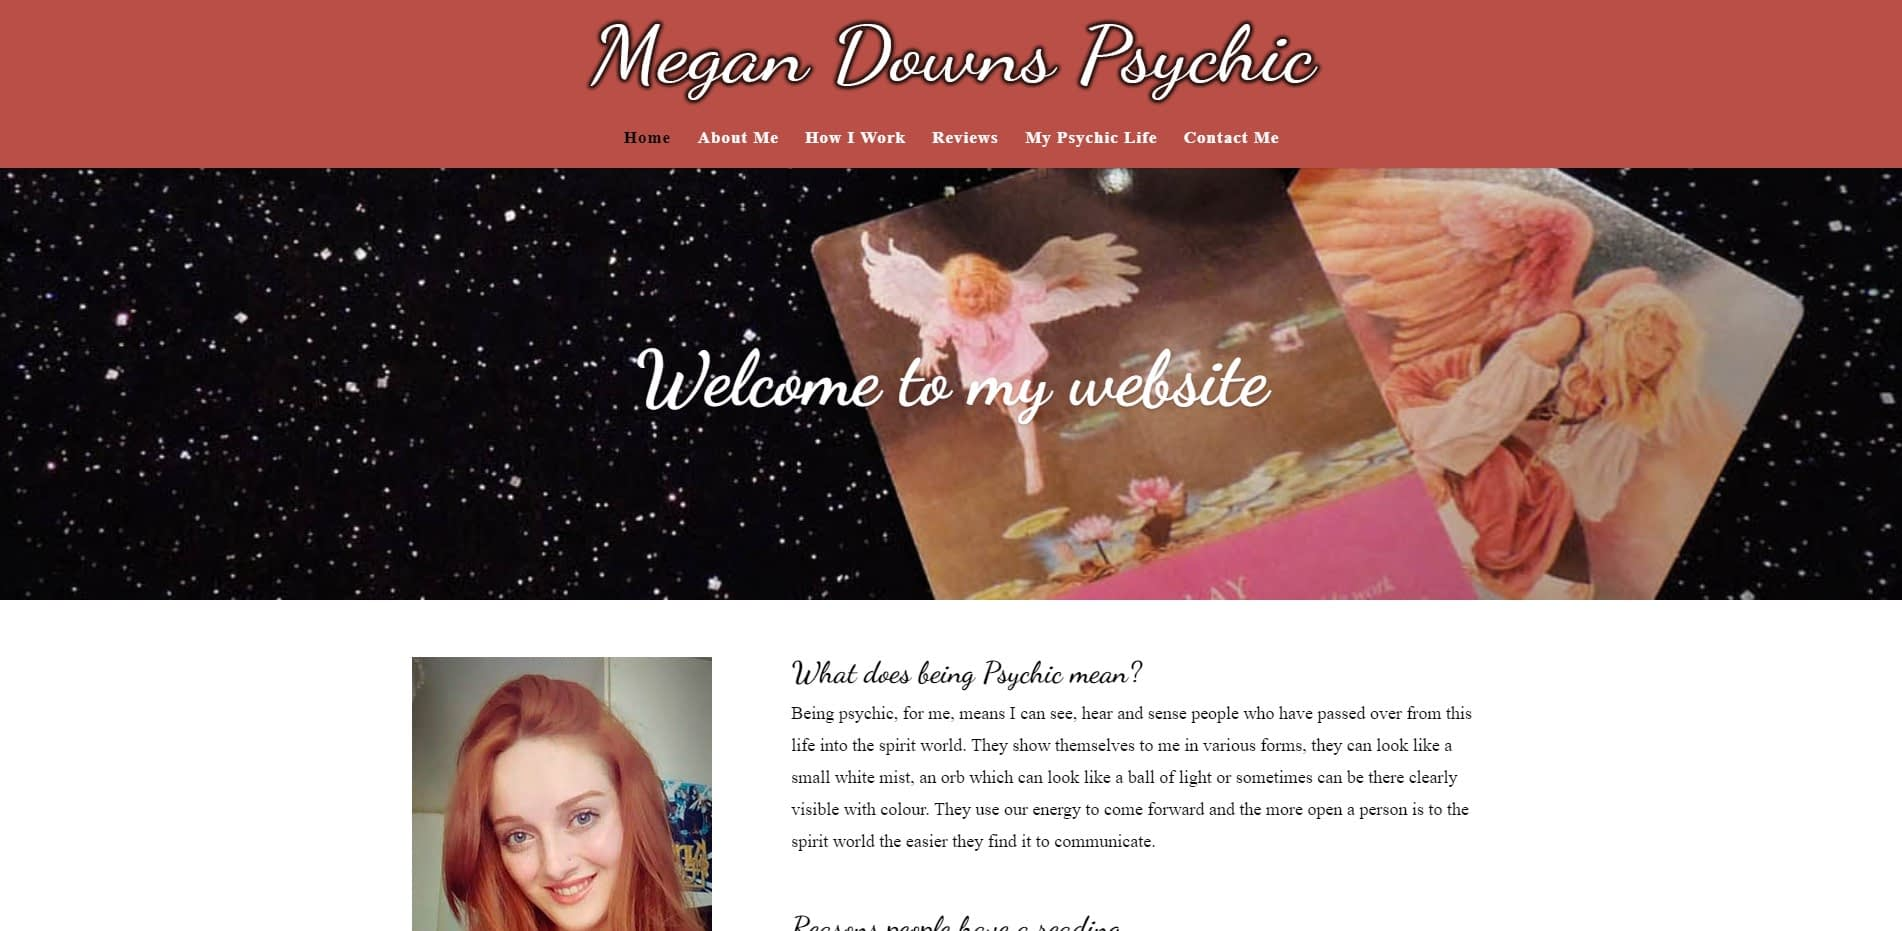 Megan Downs Psychic Screenshot